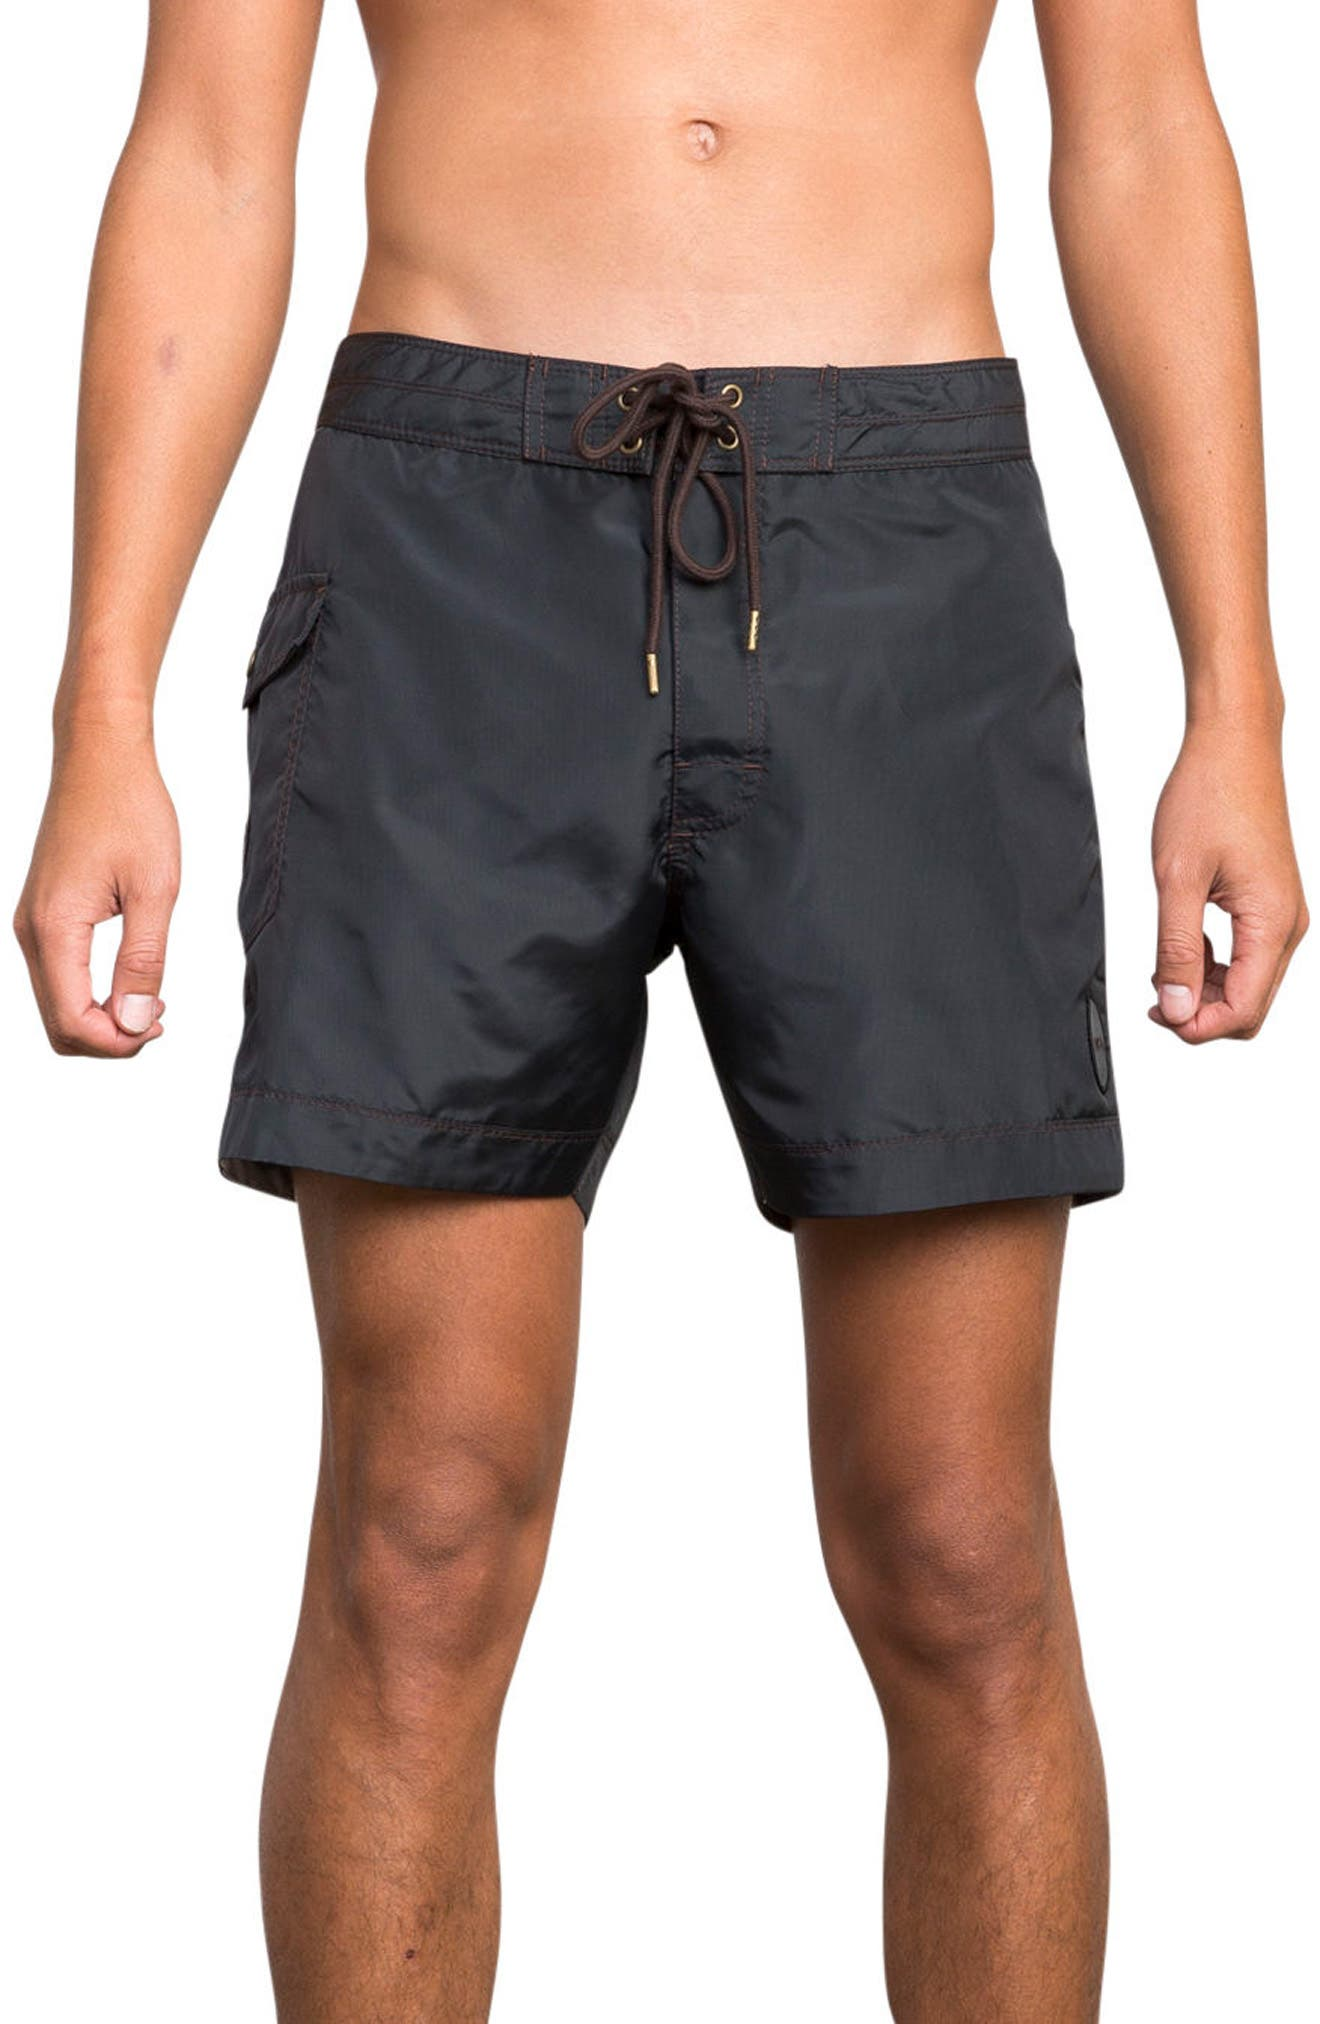 Knost Swim Trunks,                         Main,                         color, 008